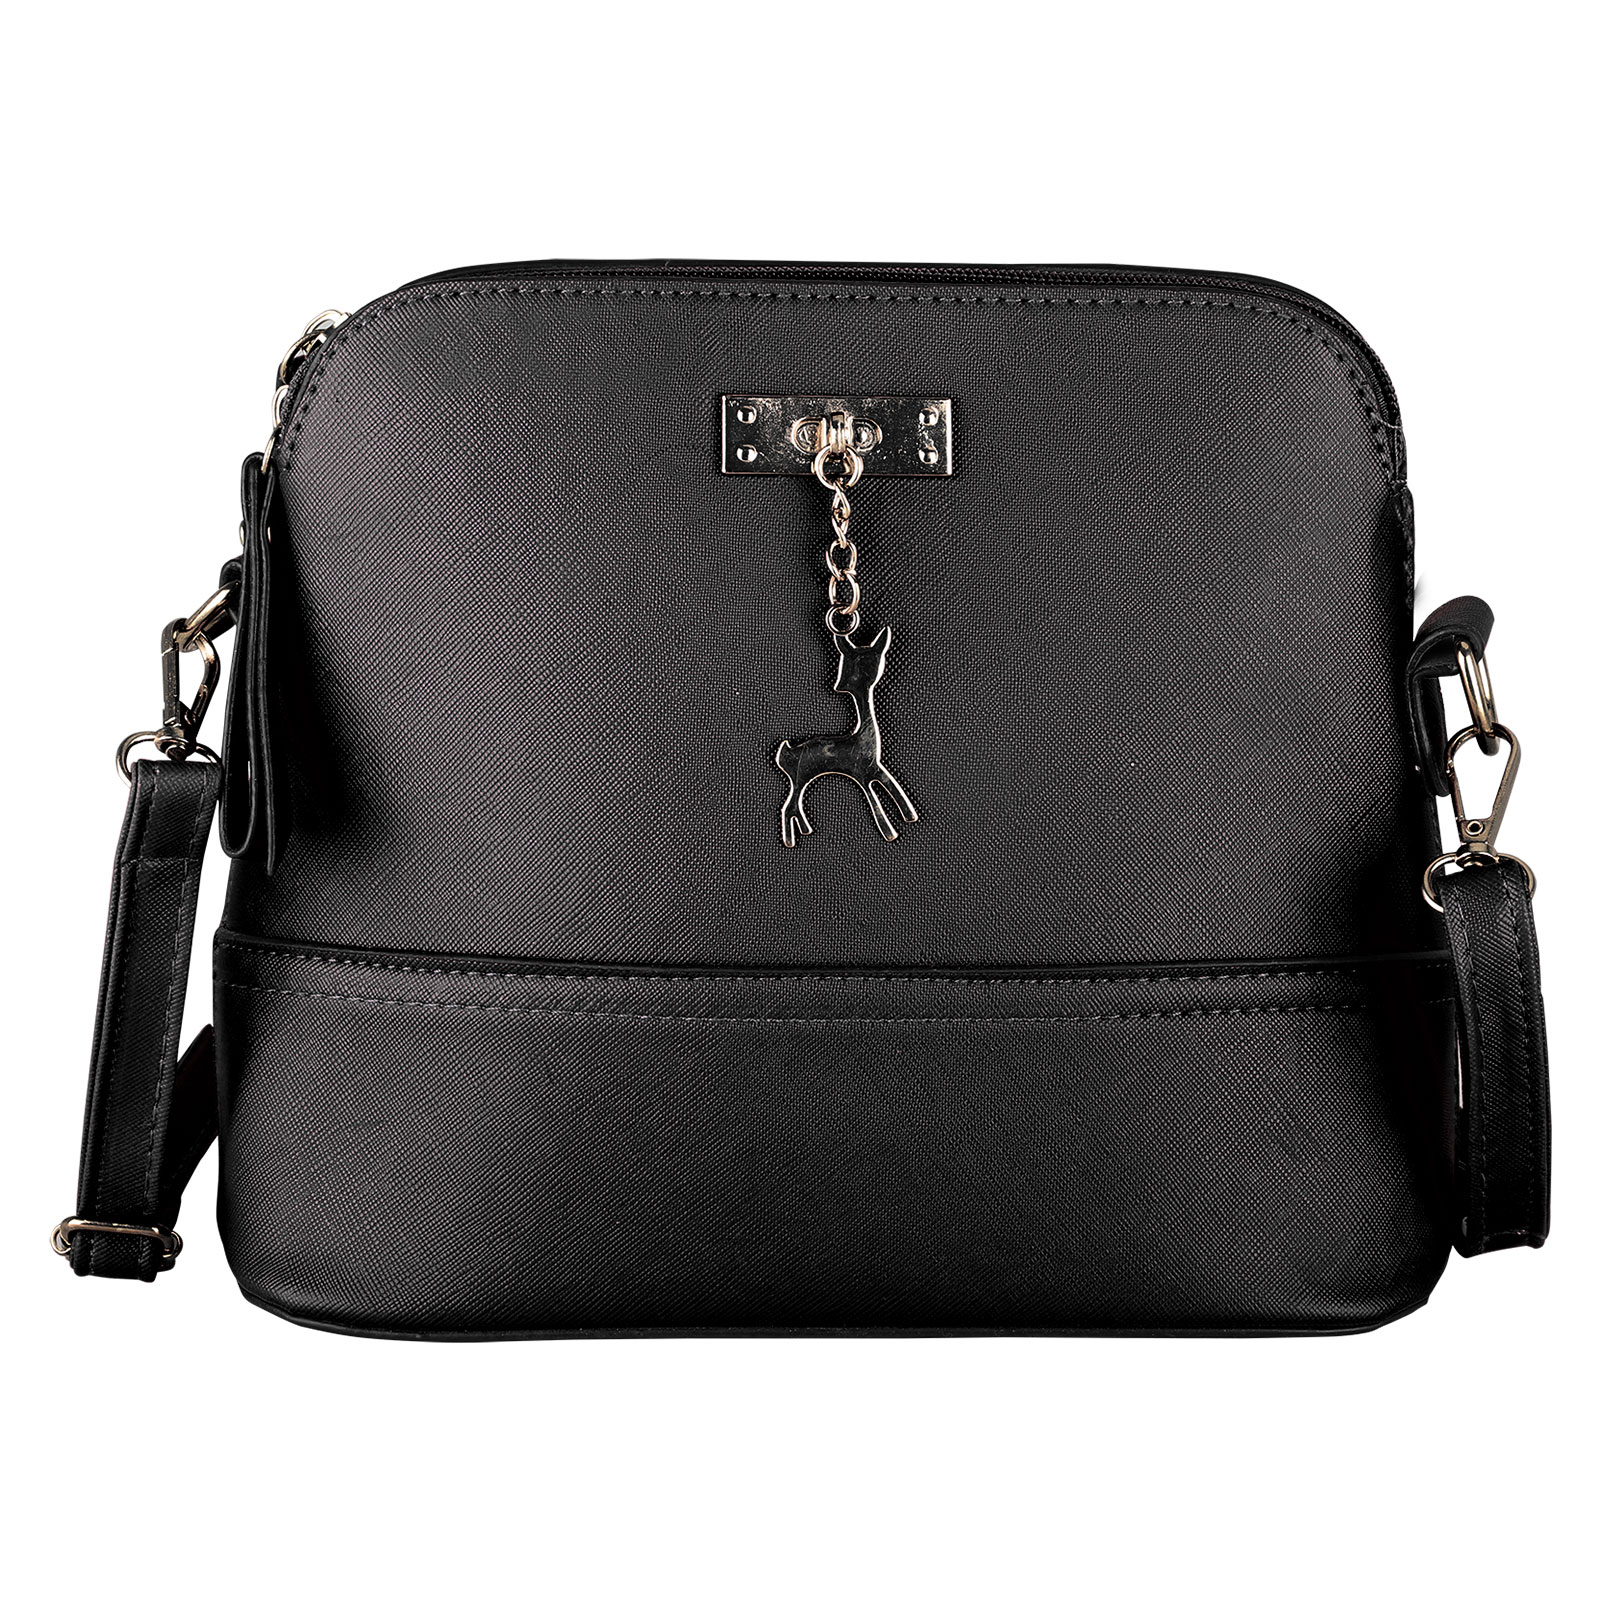 Women-Handbag-Shoulder-Messenger-Crossbody-Bag-Ladies-Leather-Satchel-Purse-Tote thumbnail 10